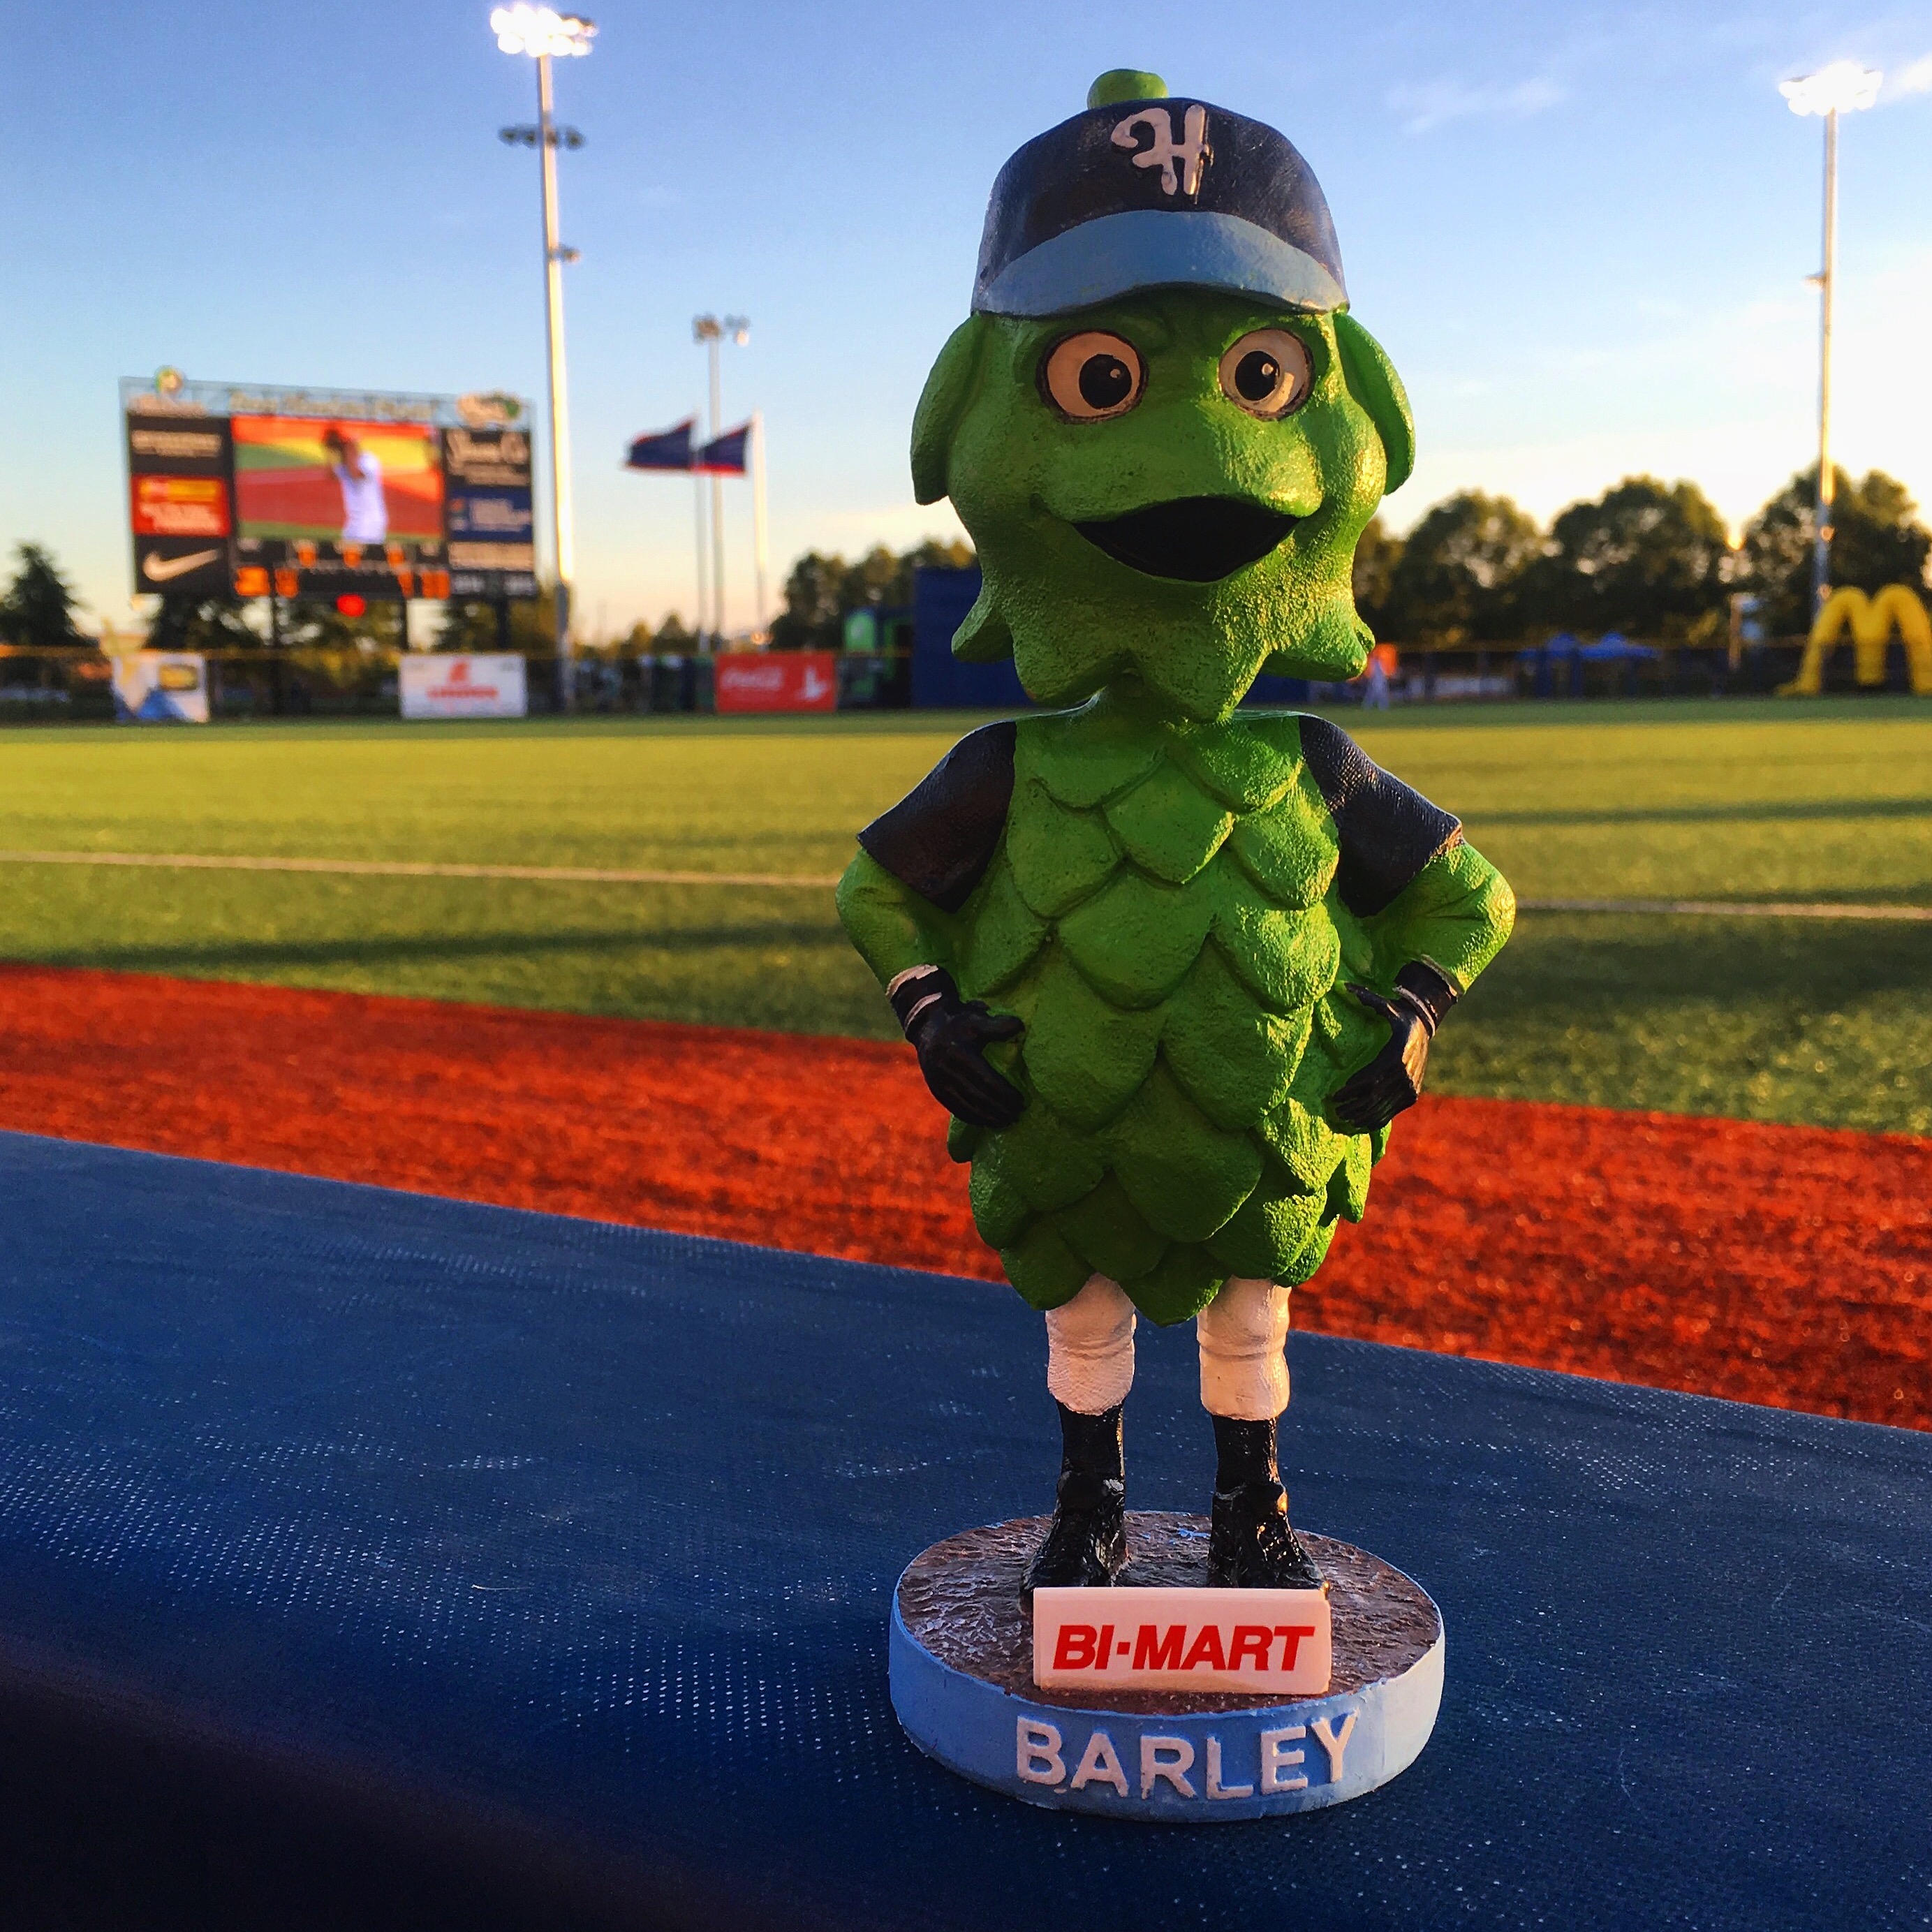 Barley the Hop Bobblehead at Ron Tonkin Field during a Hillsboro Hops ballgame